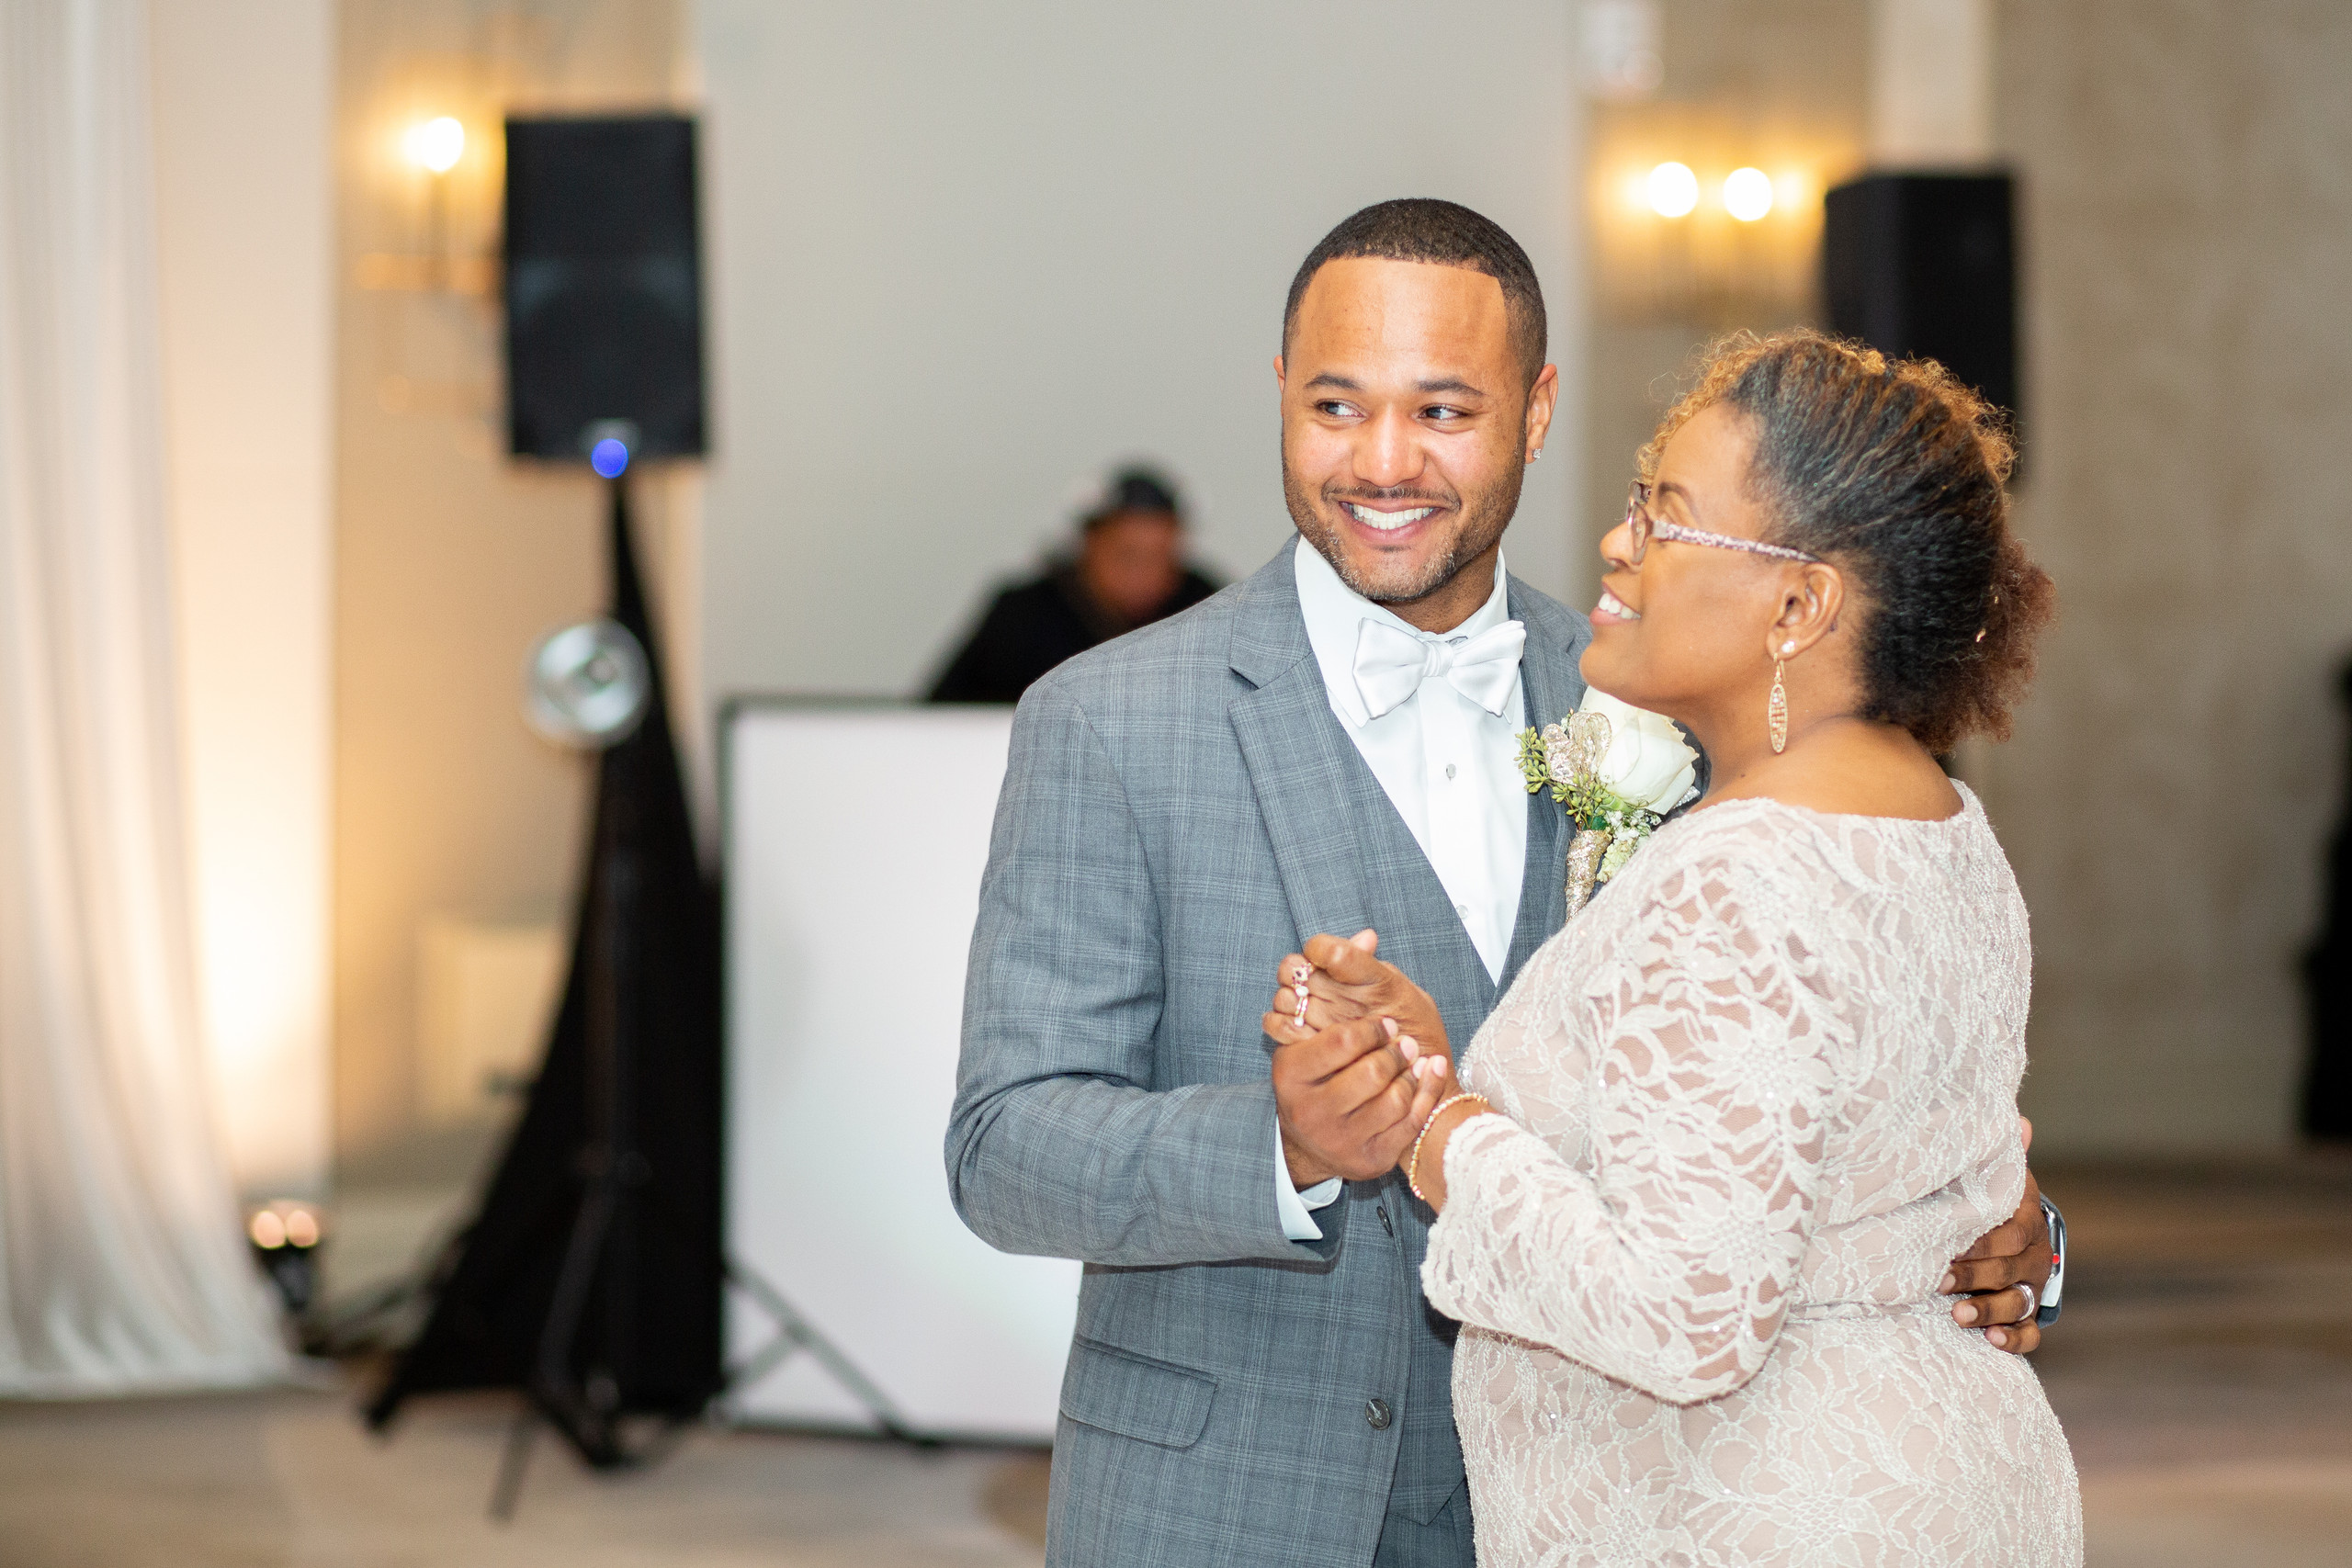 The groom and his mother dance during the wedding reception at the Hilton Main in Norfolk, Virginia.